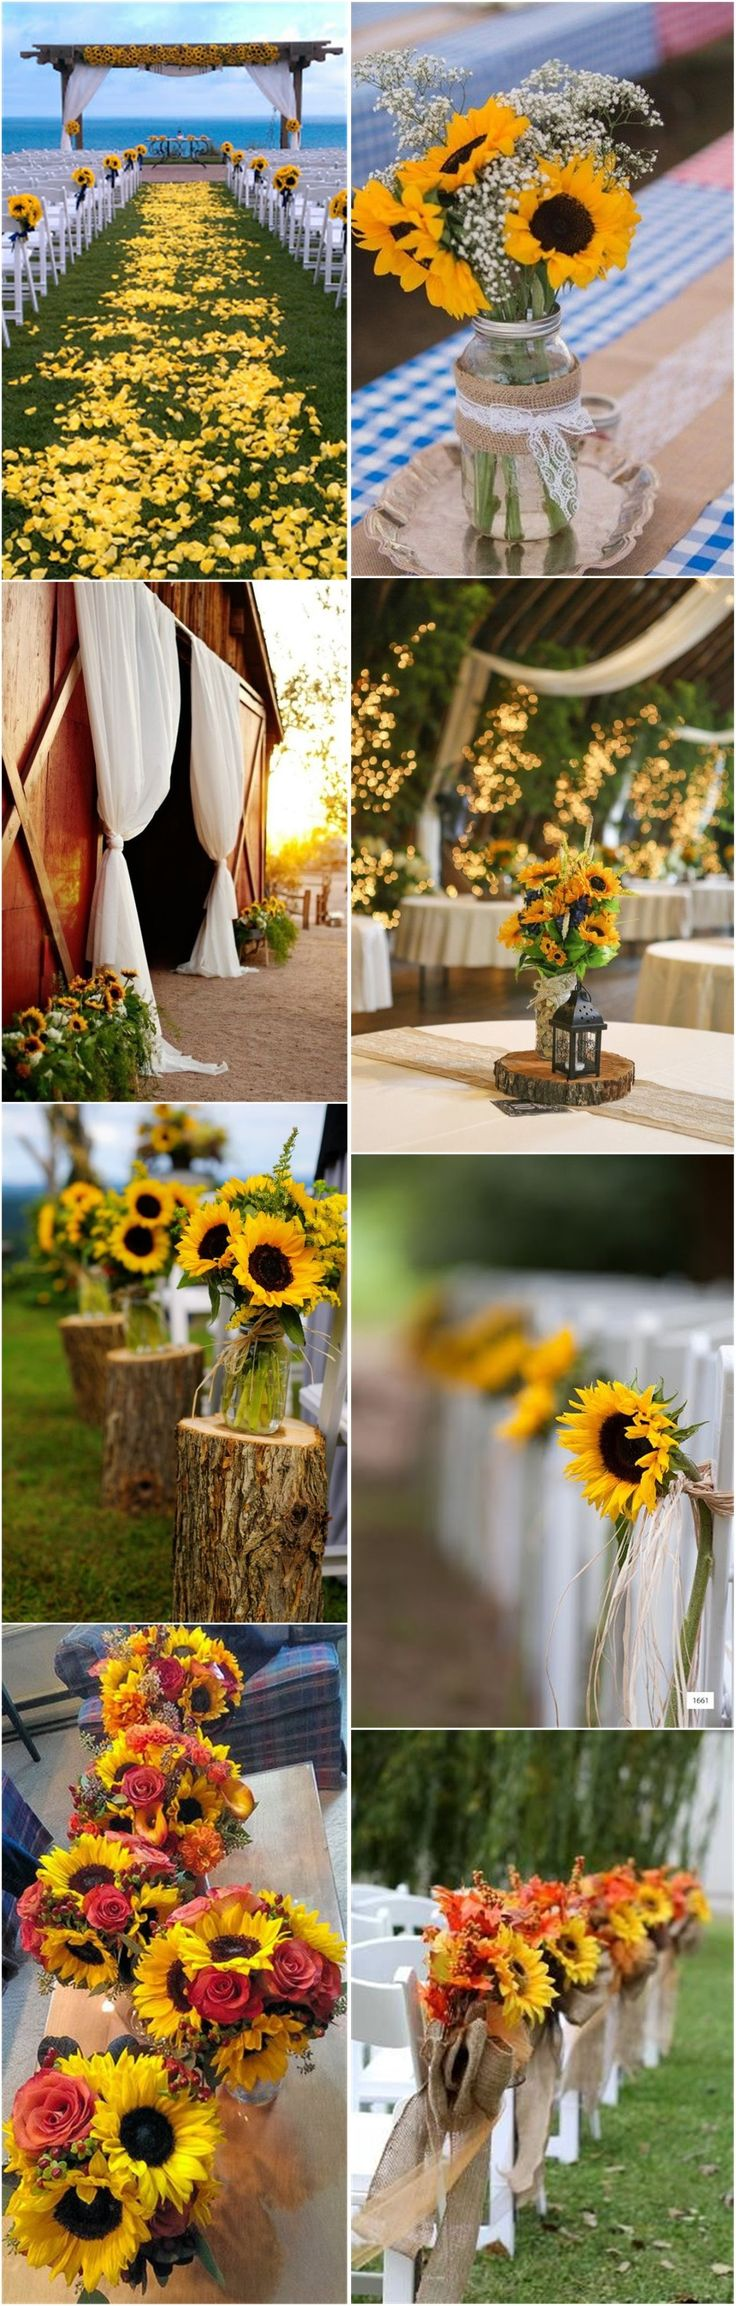 Wedding decor fall   best images about Extra on Pinterest  Wedding ideas Rustic and